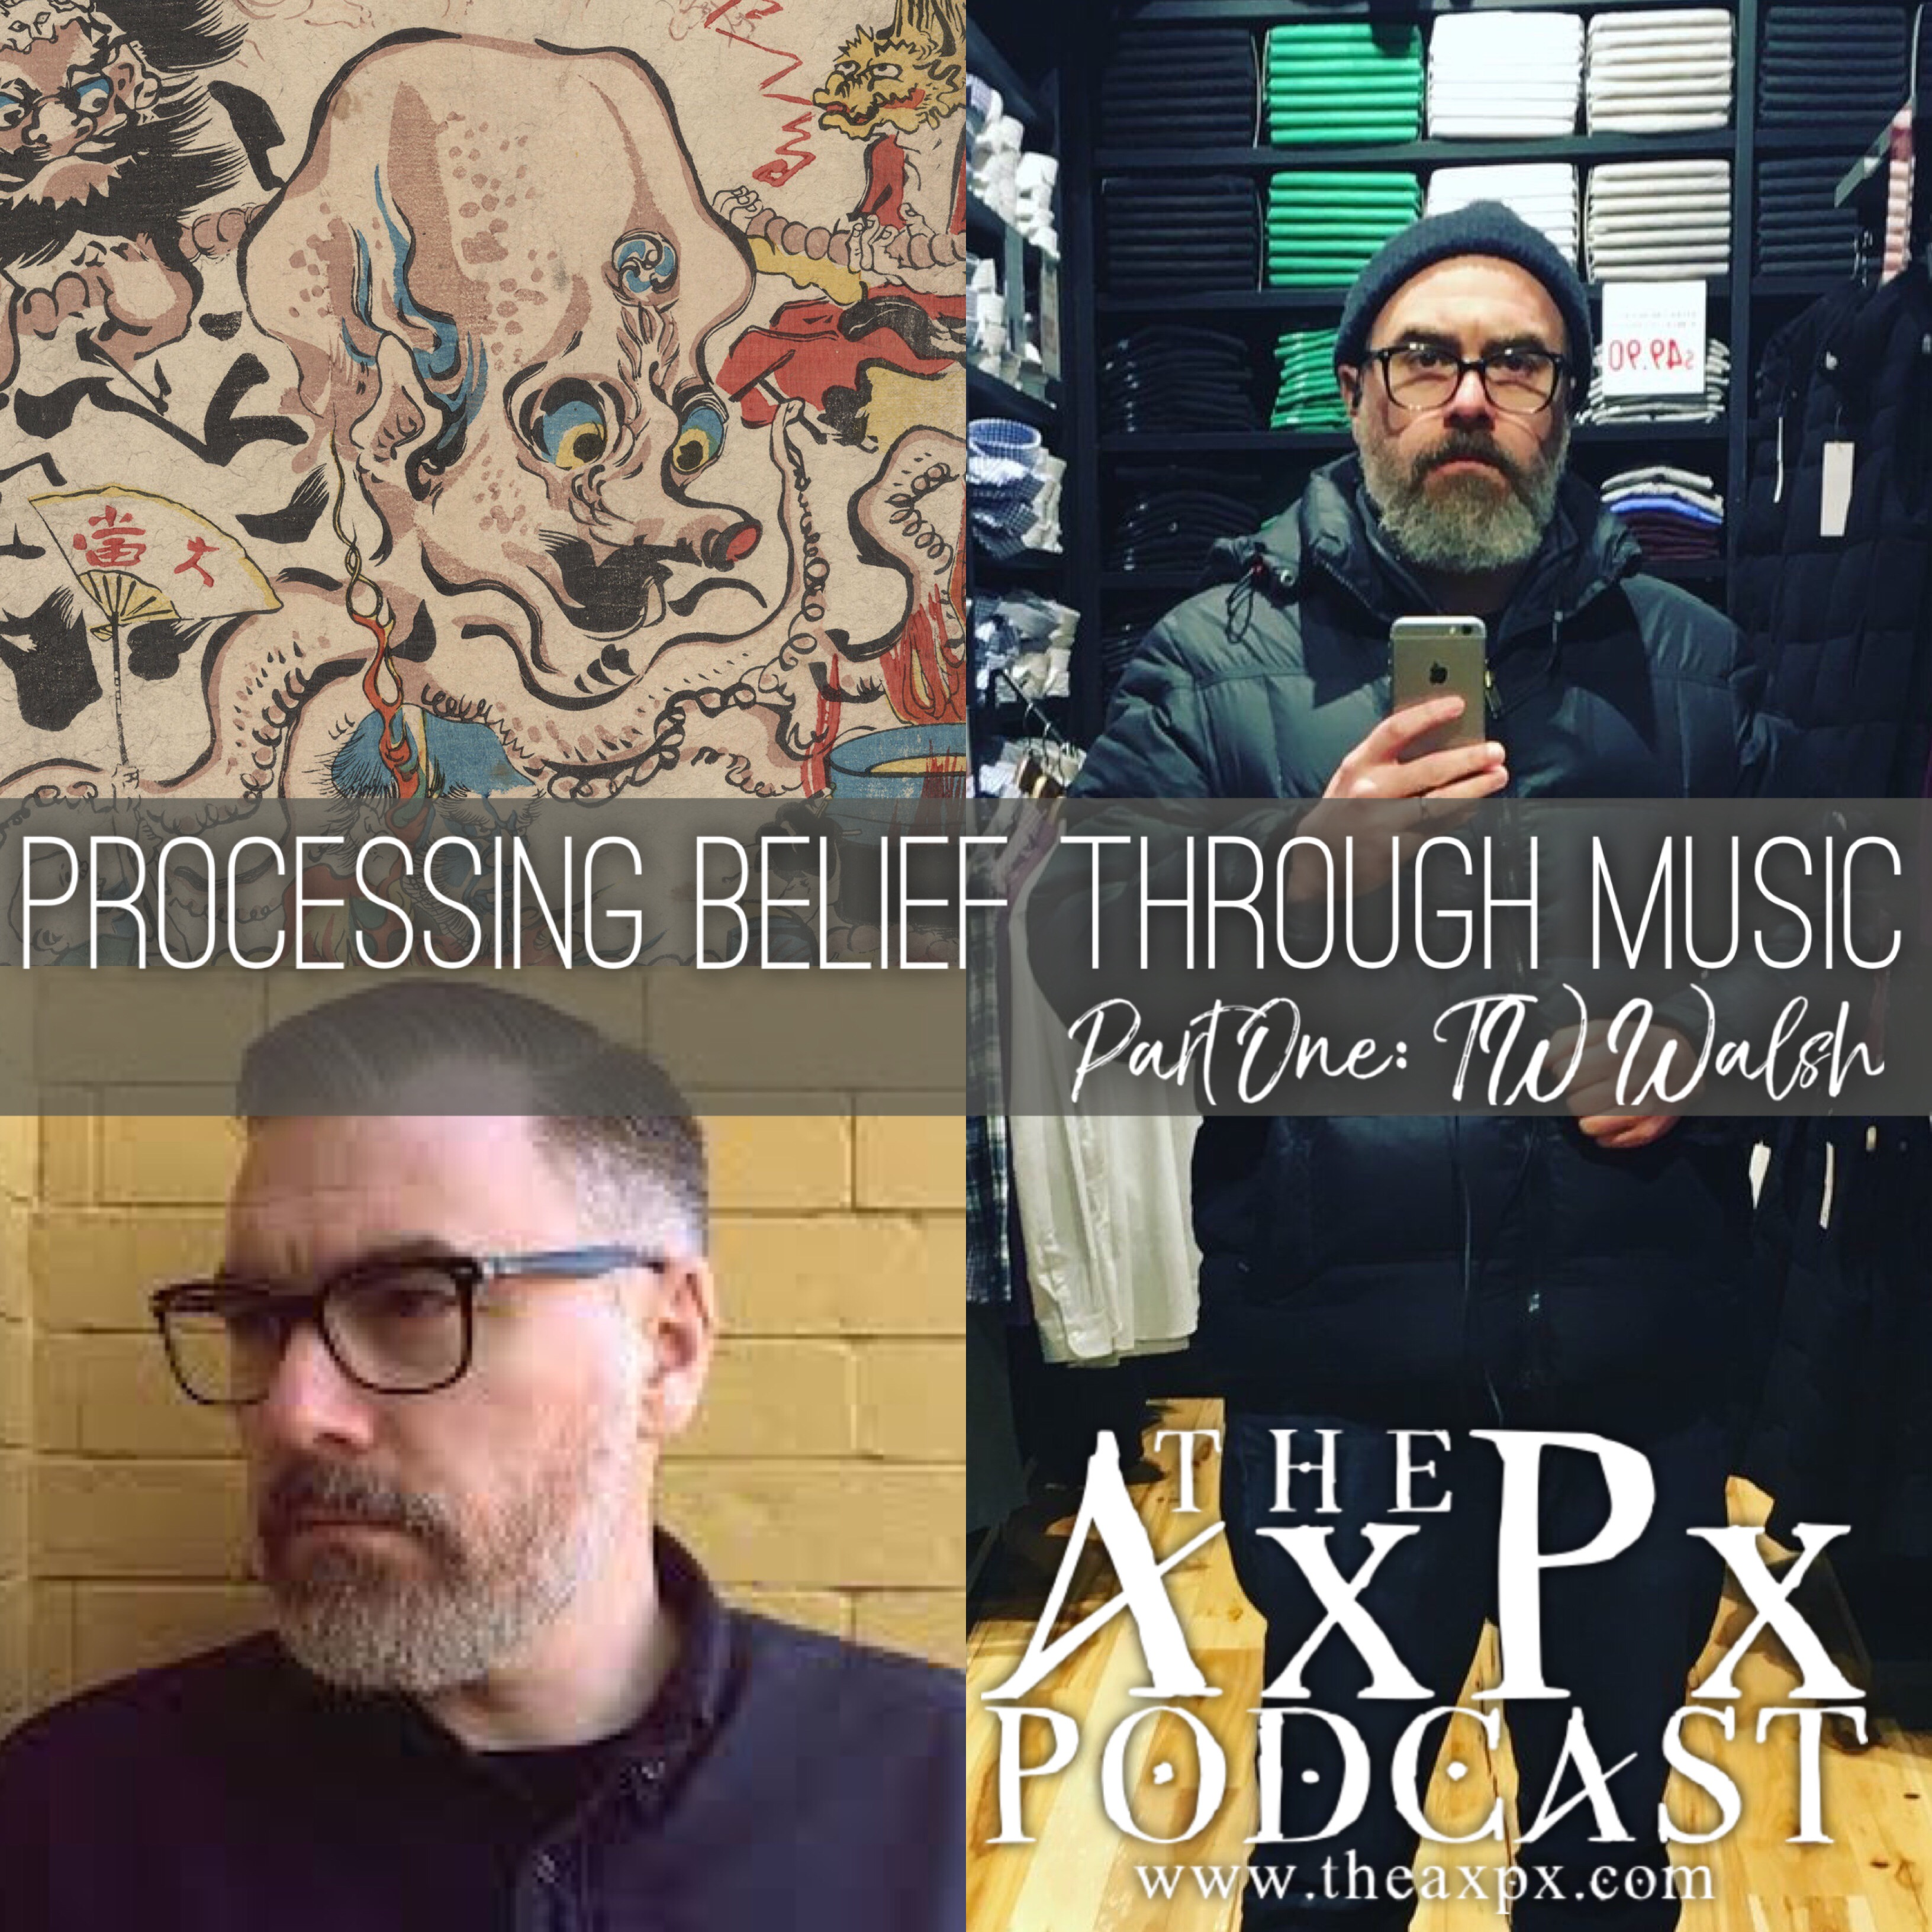 Processing Belief Through Music, Part 1 – TW Walsh